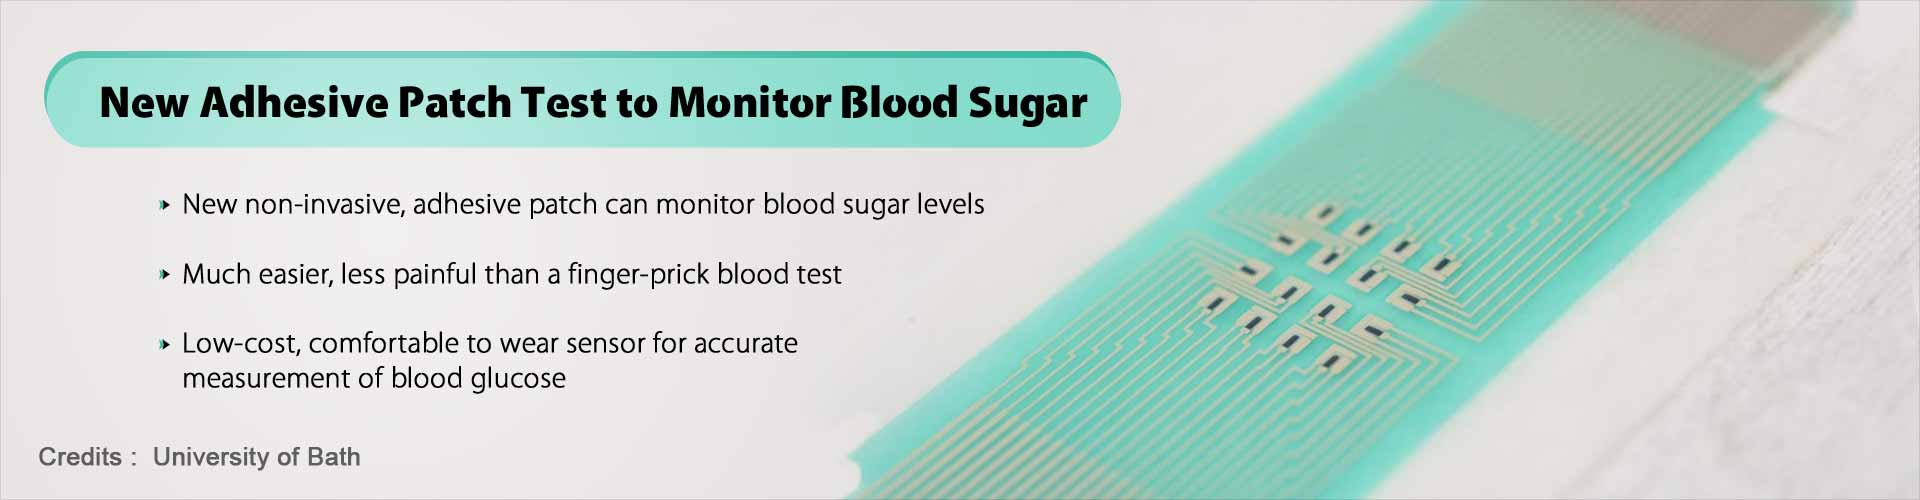 Easy Way to Monitor Blood Sugar Using Adhesive Patch Test for Diabetes